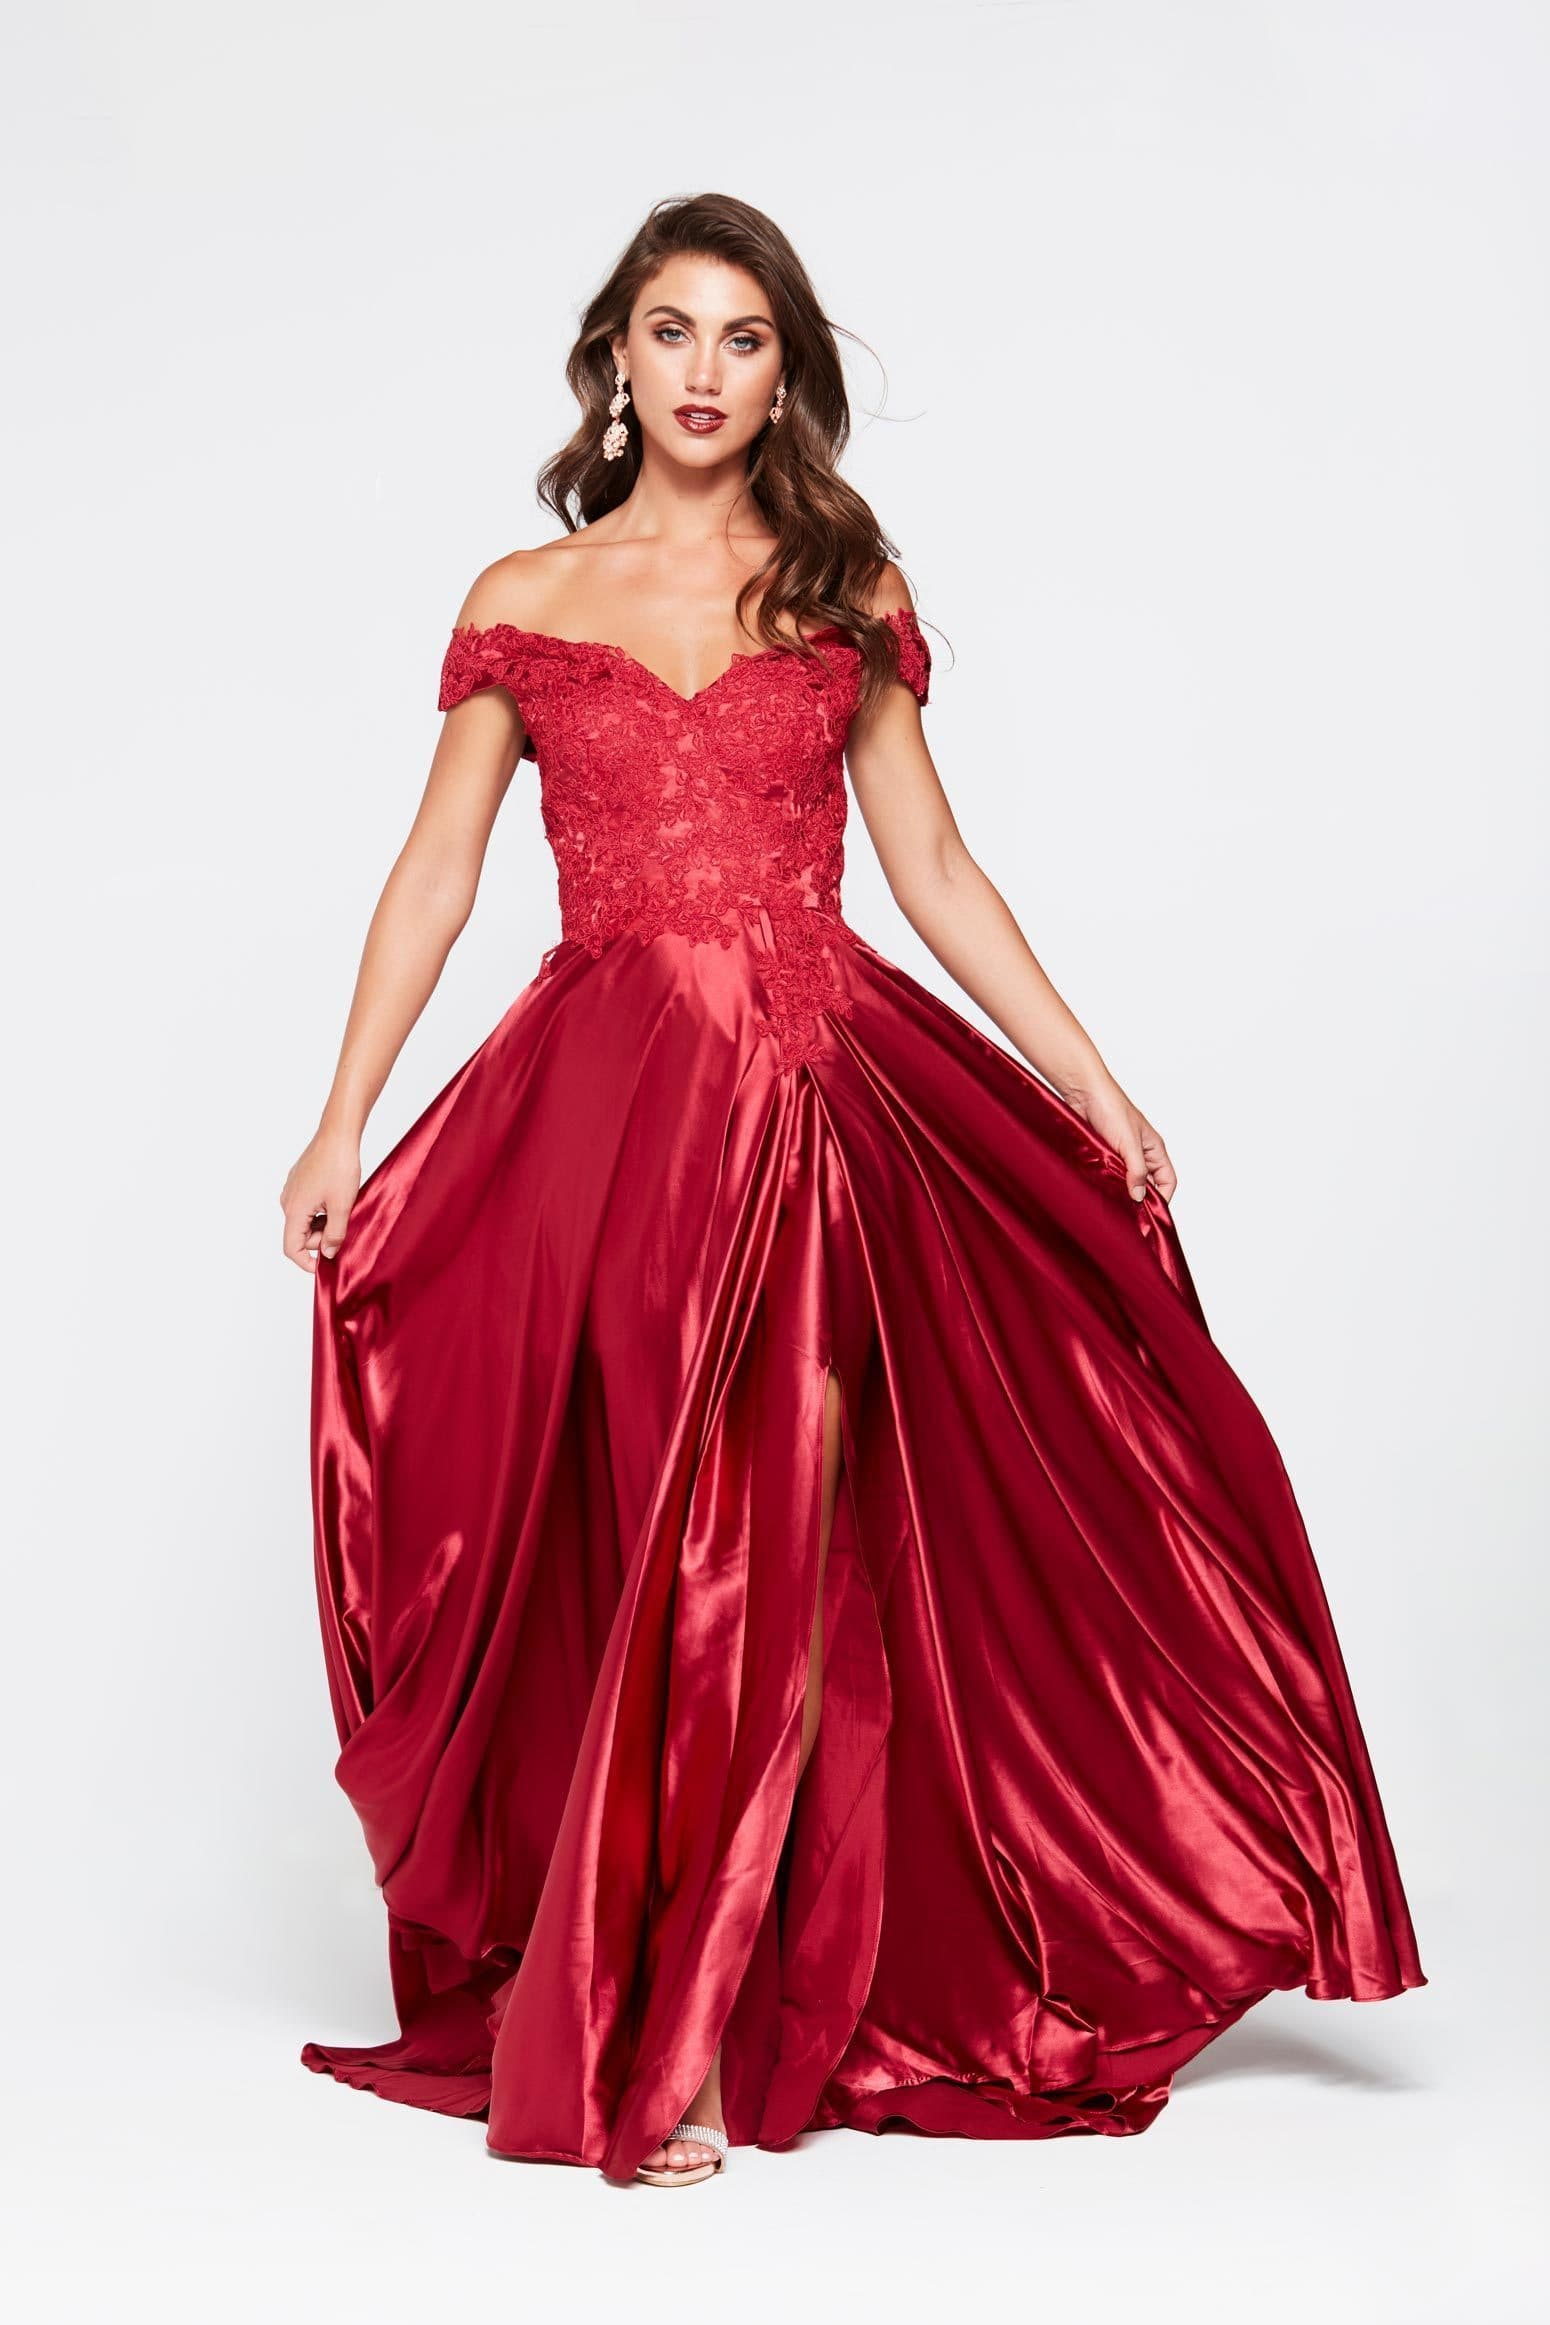 A&N Freya - Deep Red Off Shoulder Dress Made From Lace and Satin